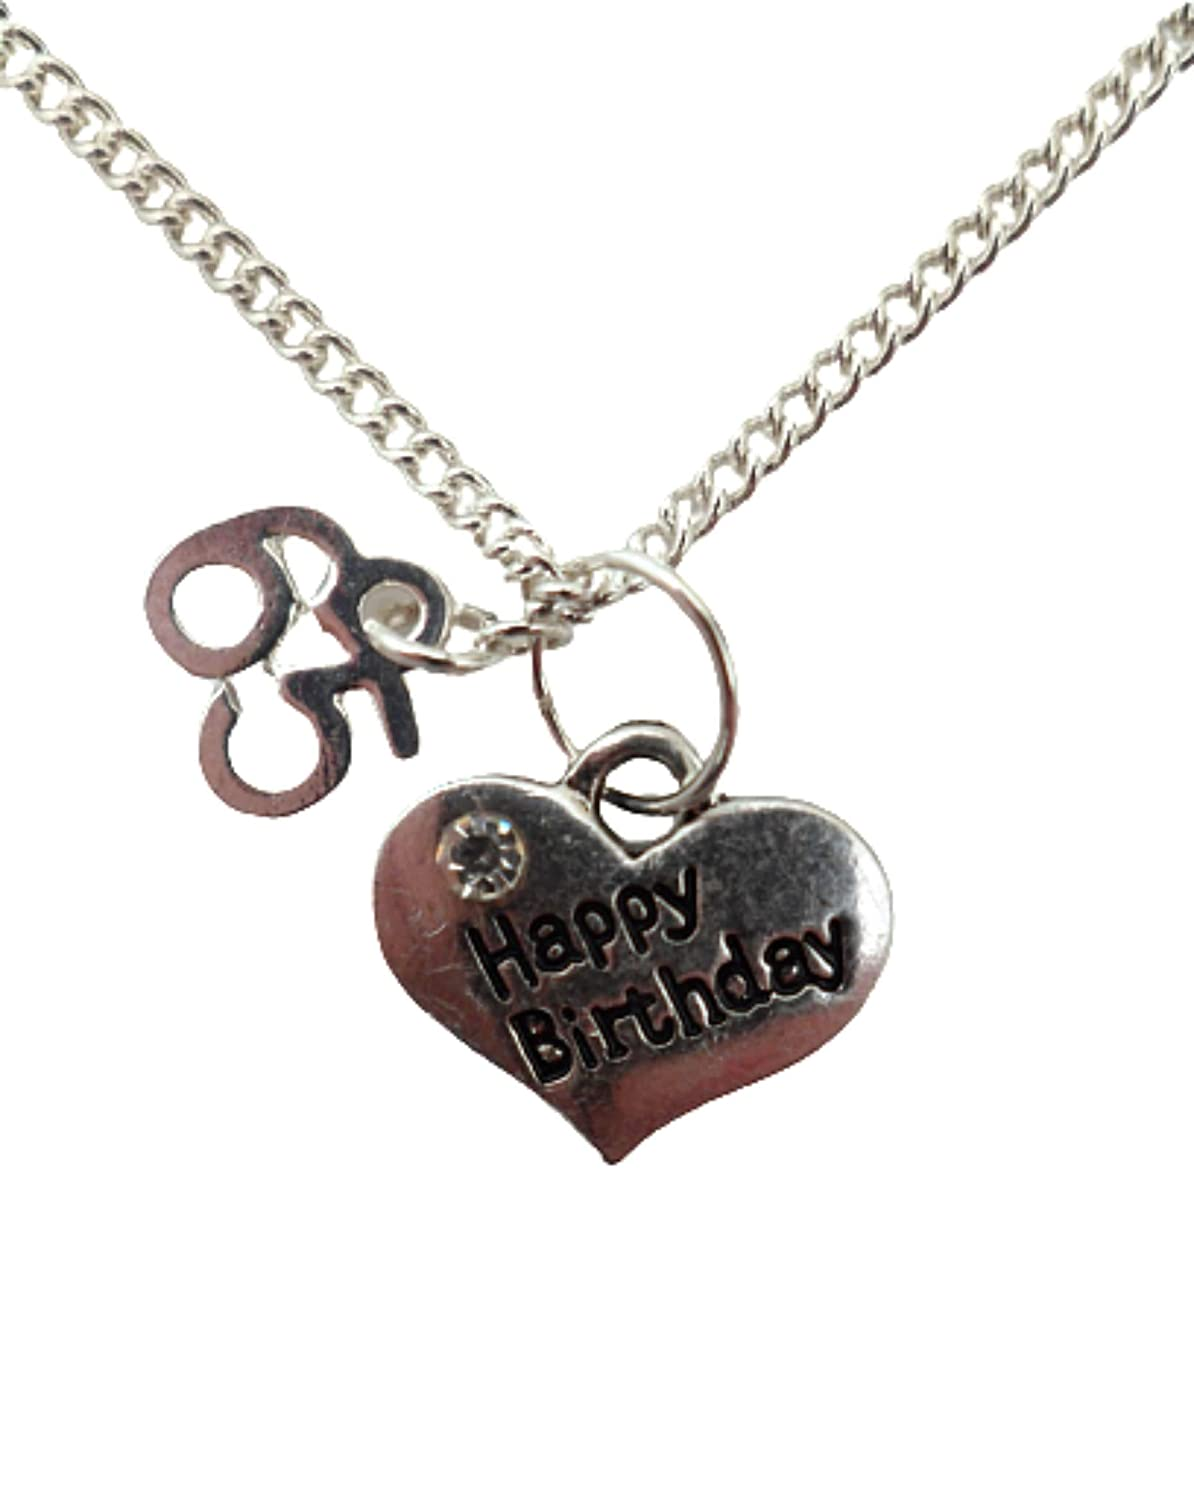 Silver Necklace Happy Birthday Love Heart Gem Charm Pendant Age 65